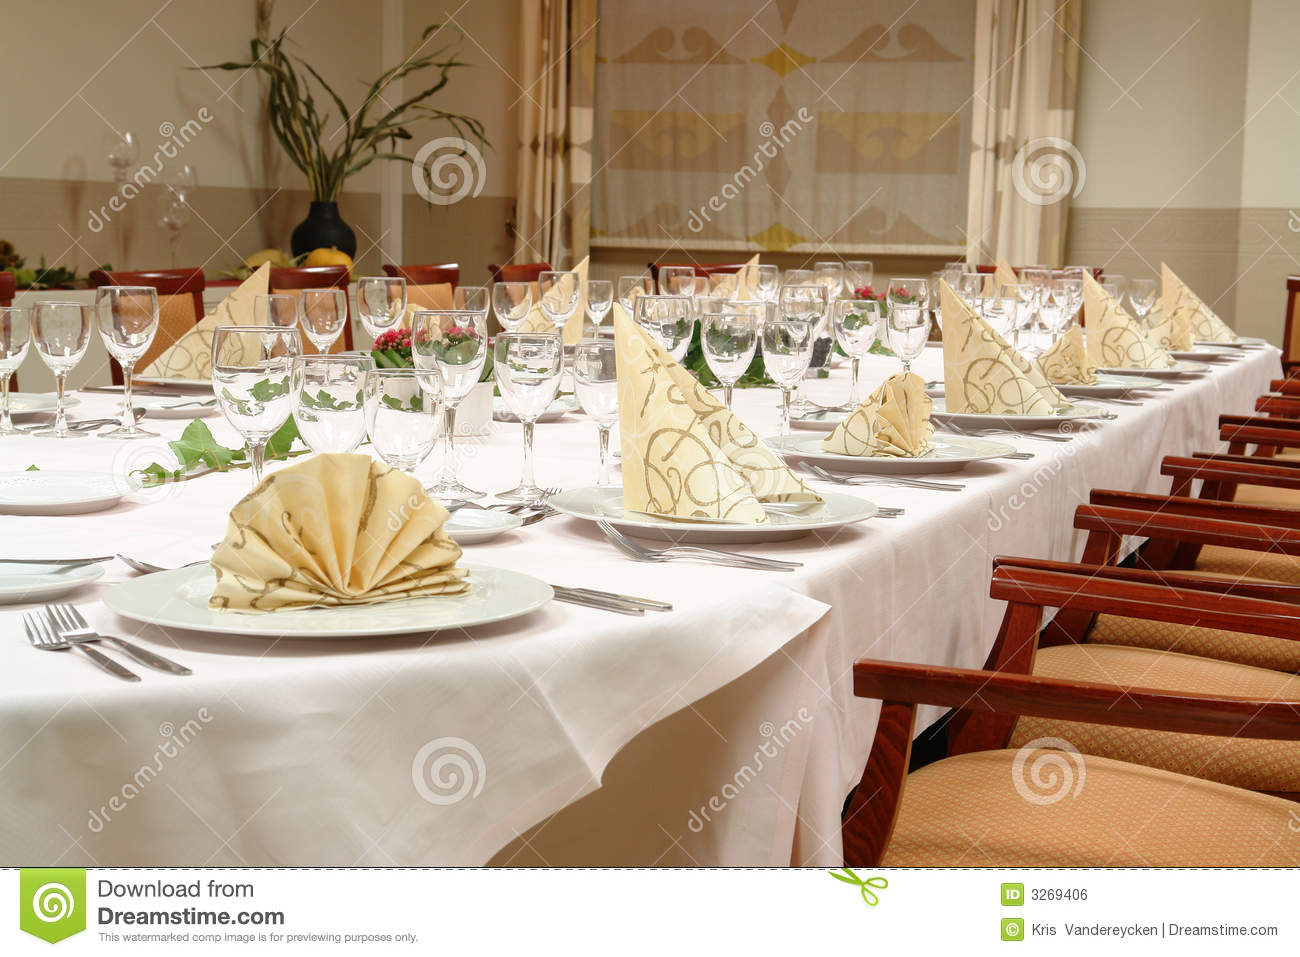 Restaurant table setting ideas - Restaurant Table Setting